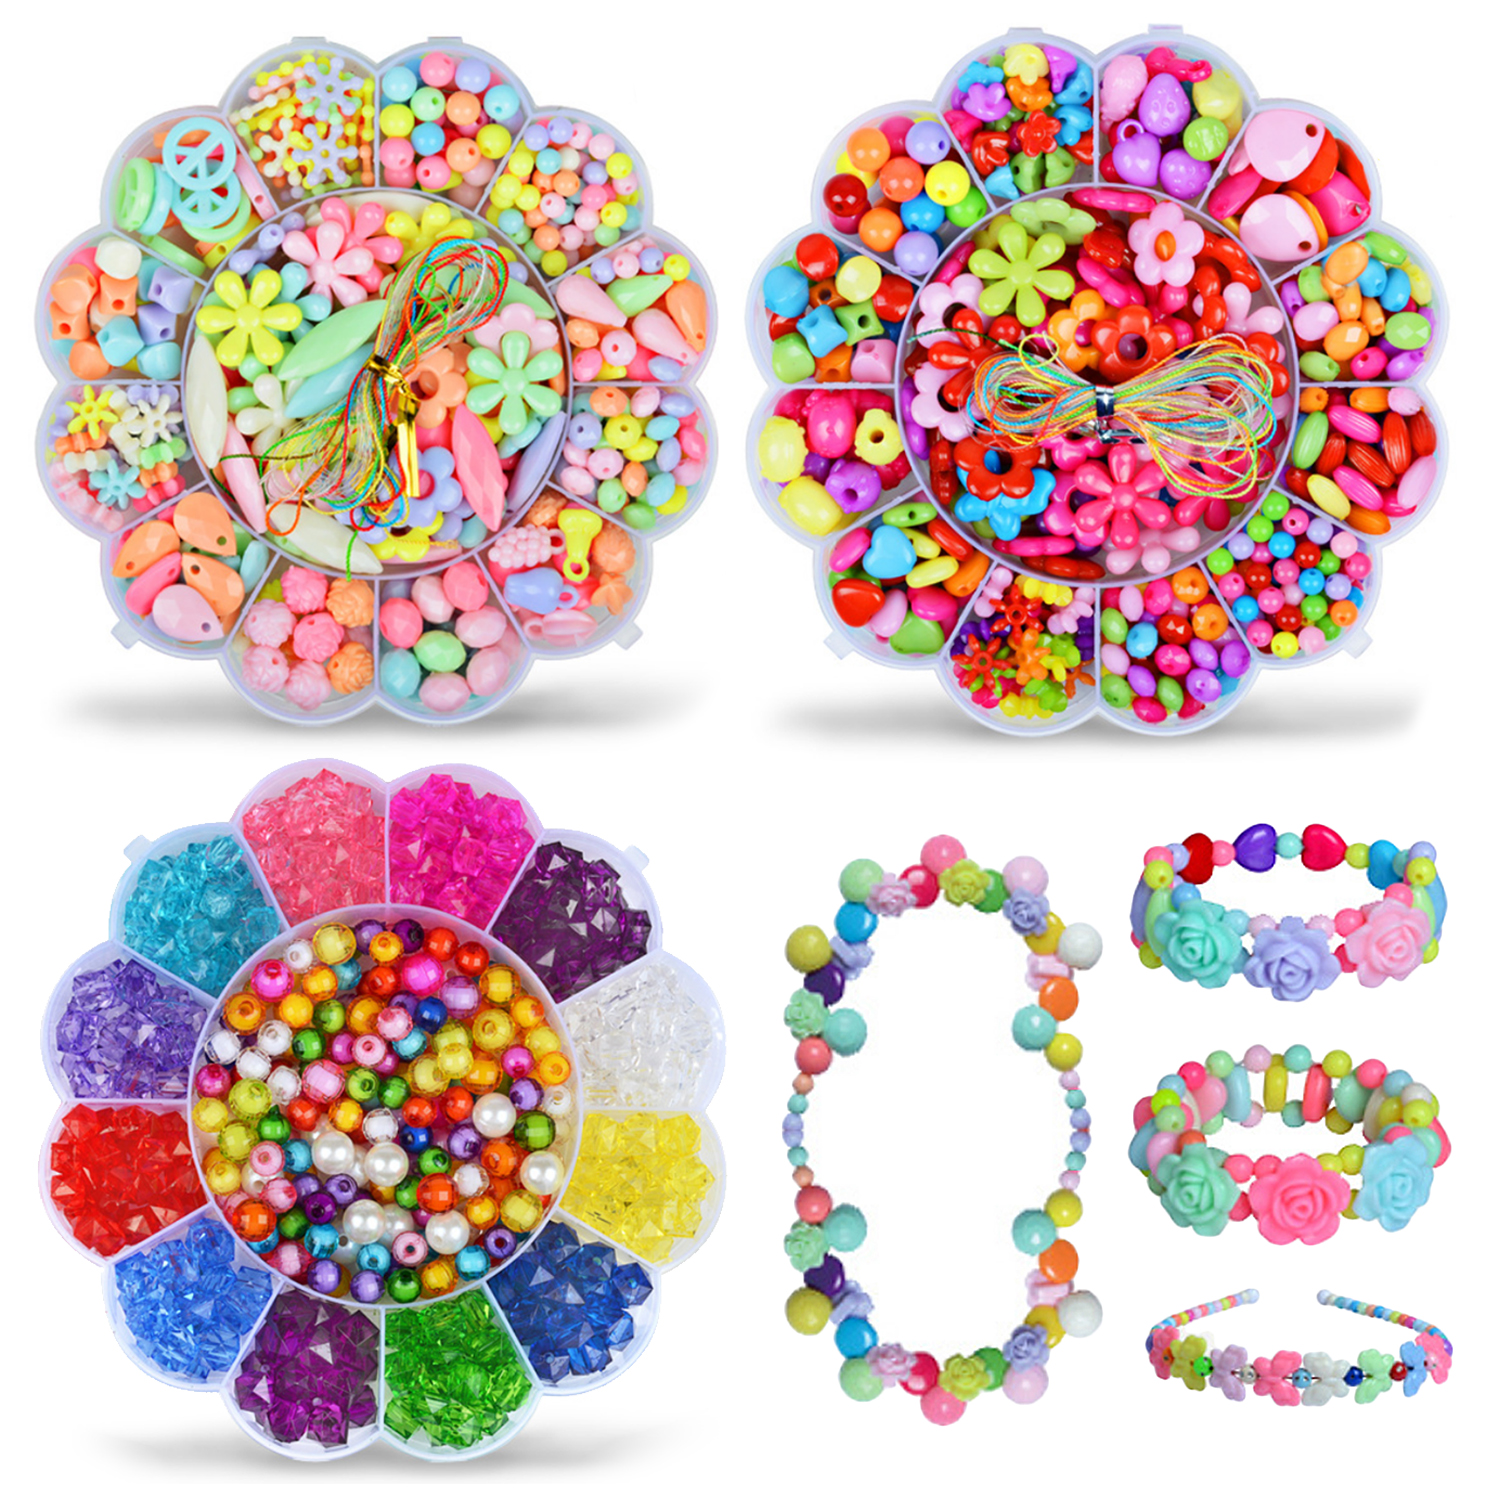 350x Kid Girls Plastic Candy Colors Round Flower Drop Shape Loose Beads With Rope Toy Bracelet Necklace Jewelry Making DIY Craft